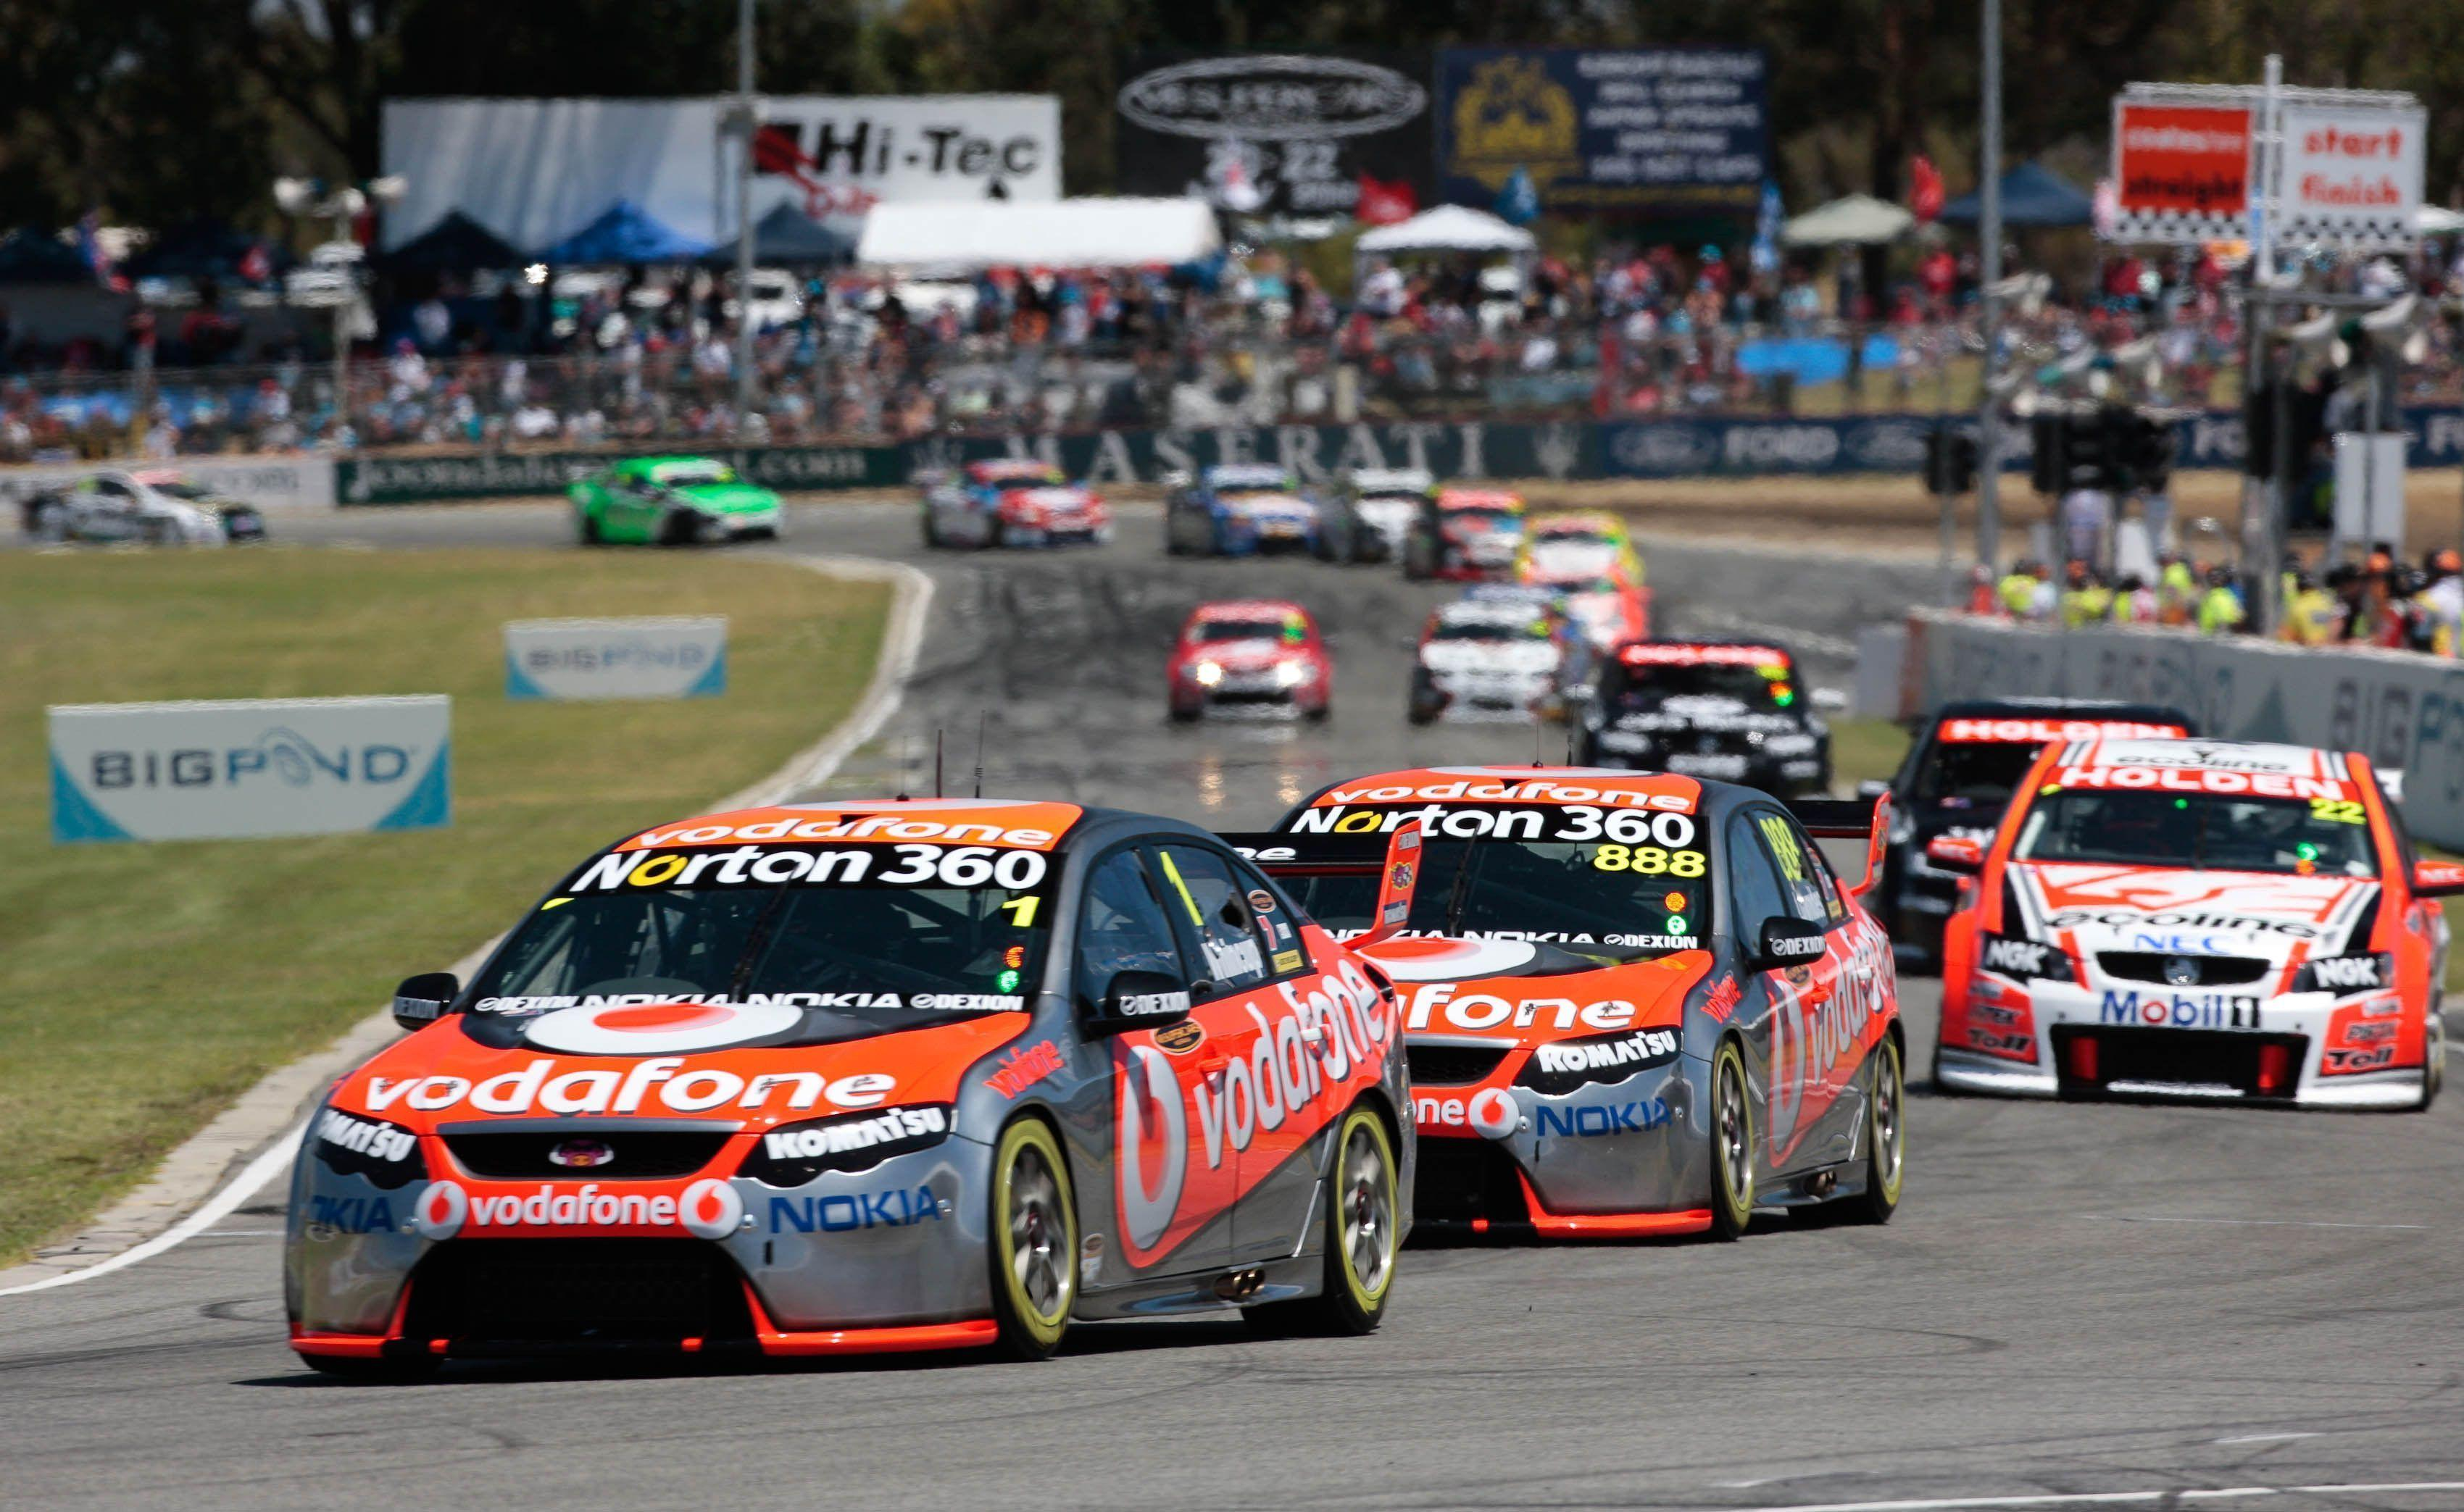 Awesome Race Car Wallpapers V8 Supercars Wallpapers Wallpaper Cave